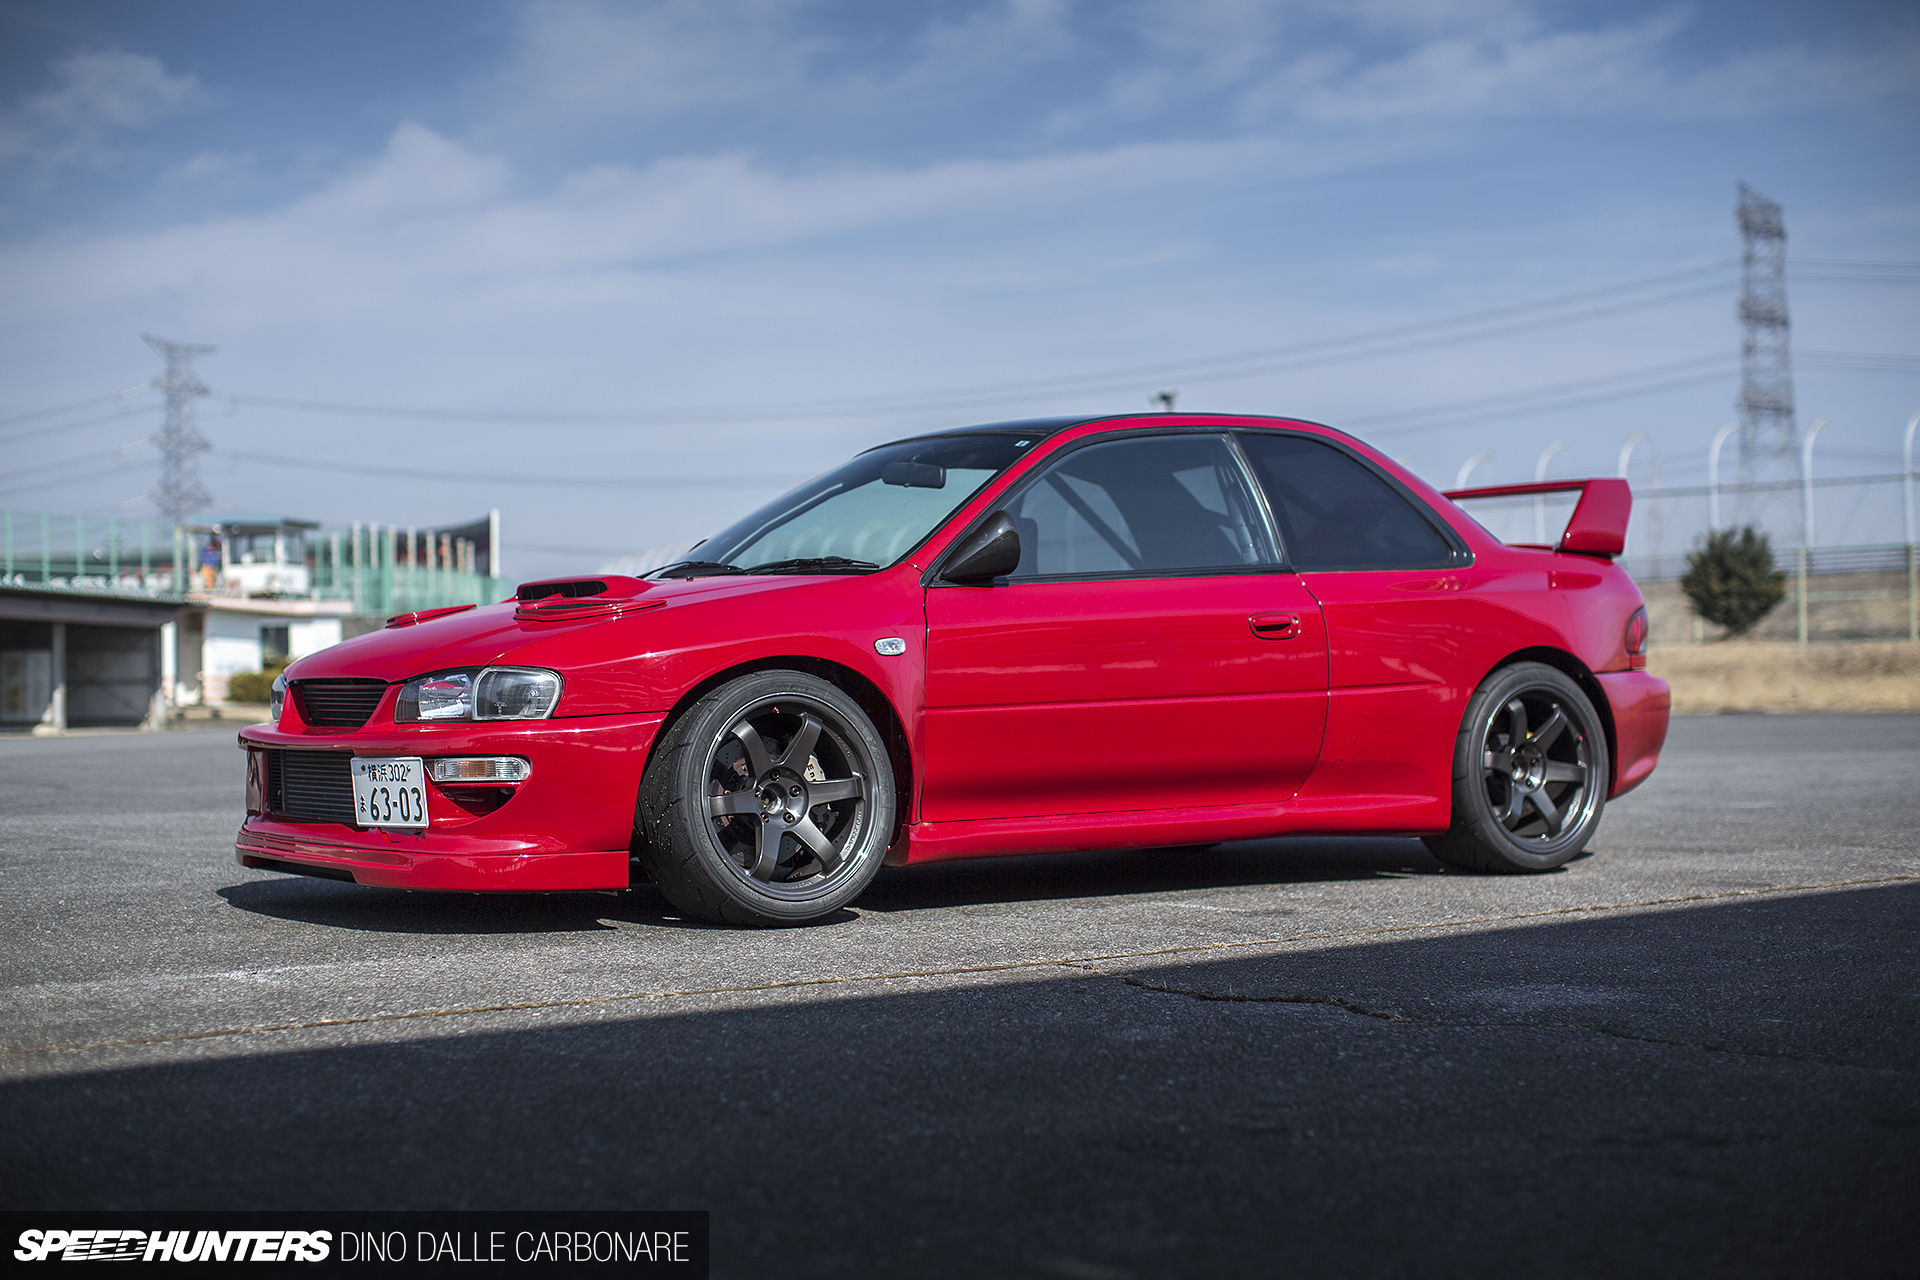 555 Horses Of Widened Fury - Anything Cars - The Car Enthusiasts